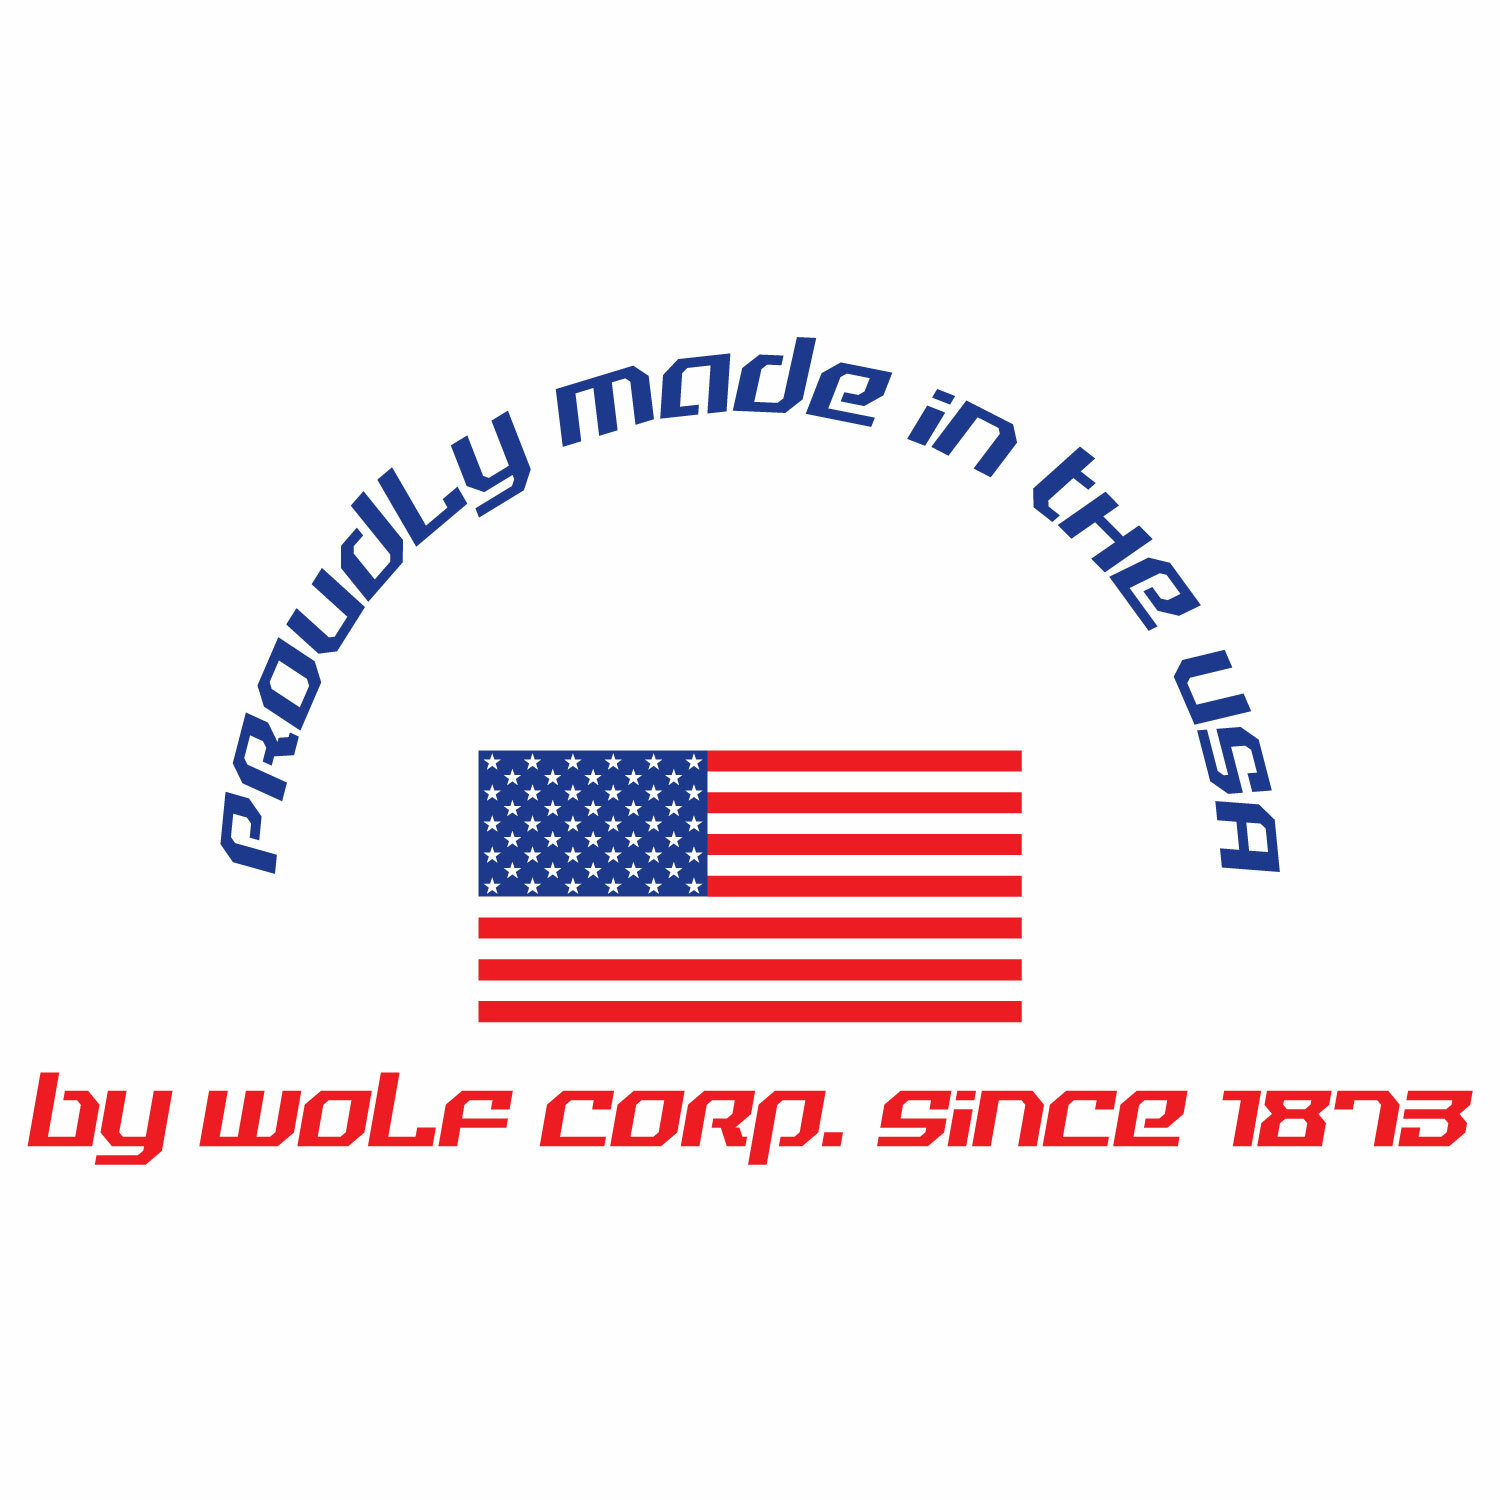 Made in the USA since 1873